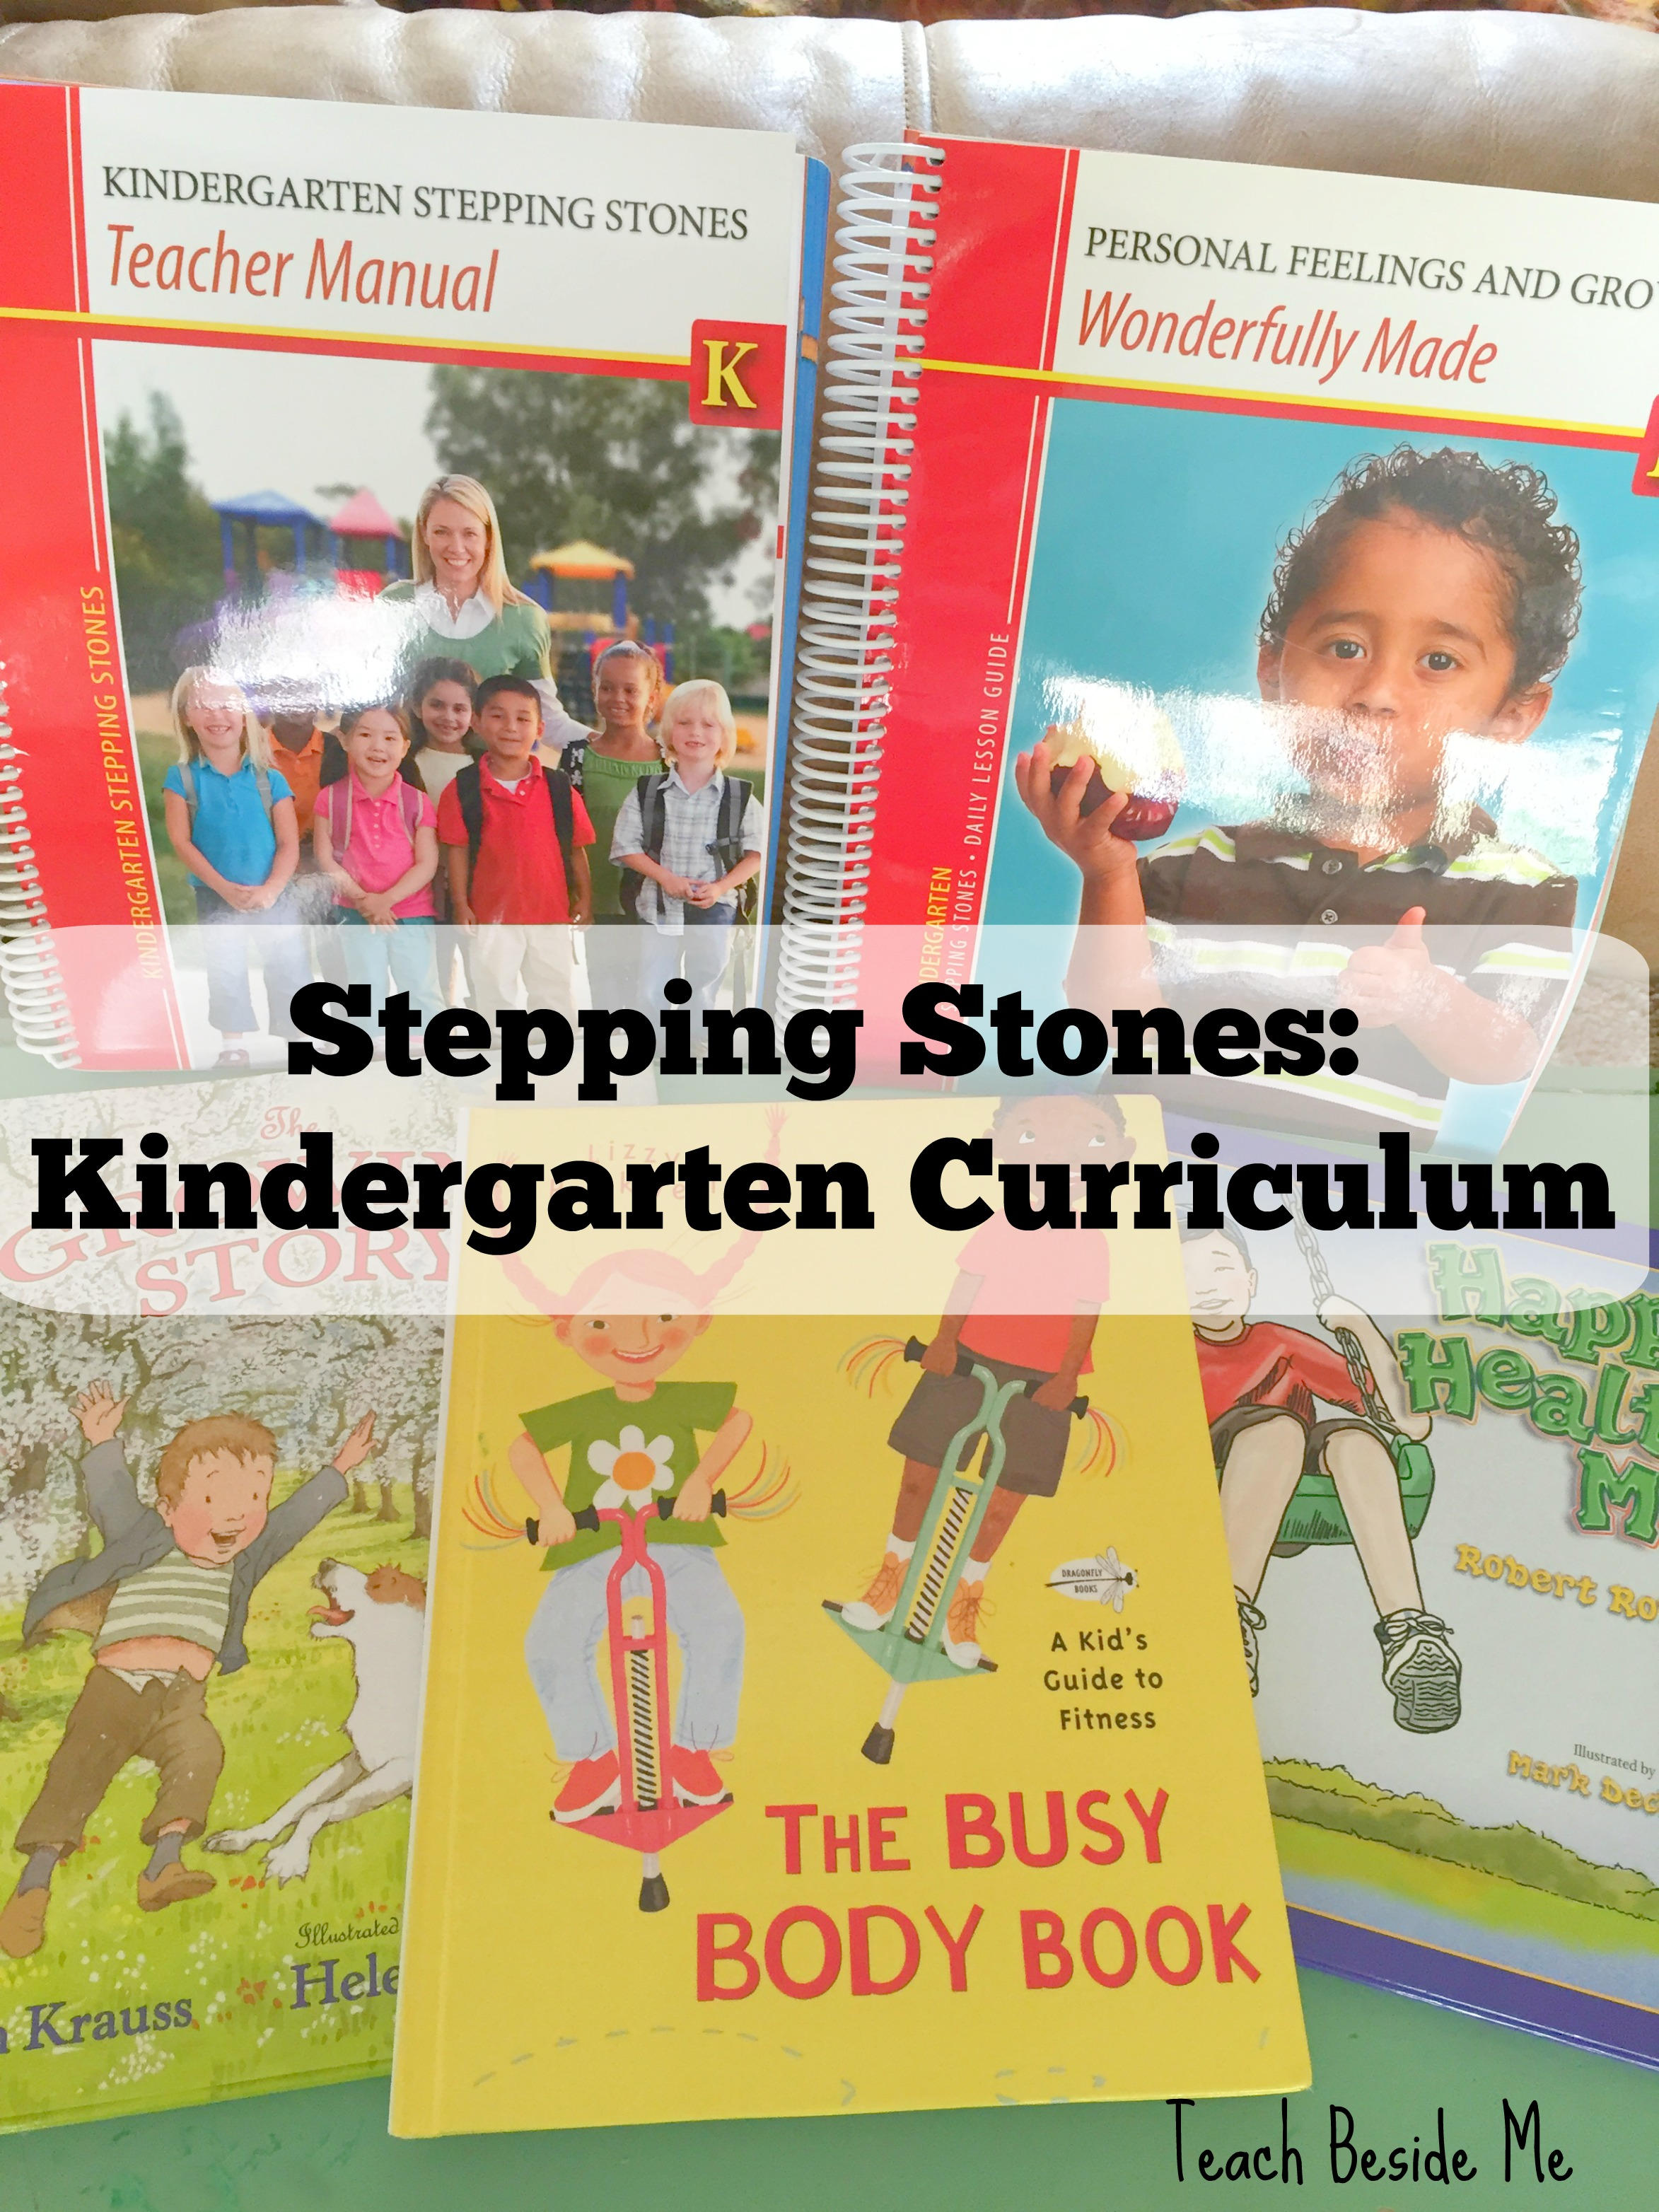 Kindergarten Curriculum: Stepping Stones